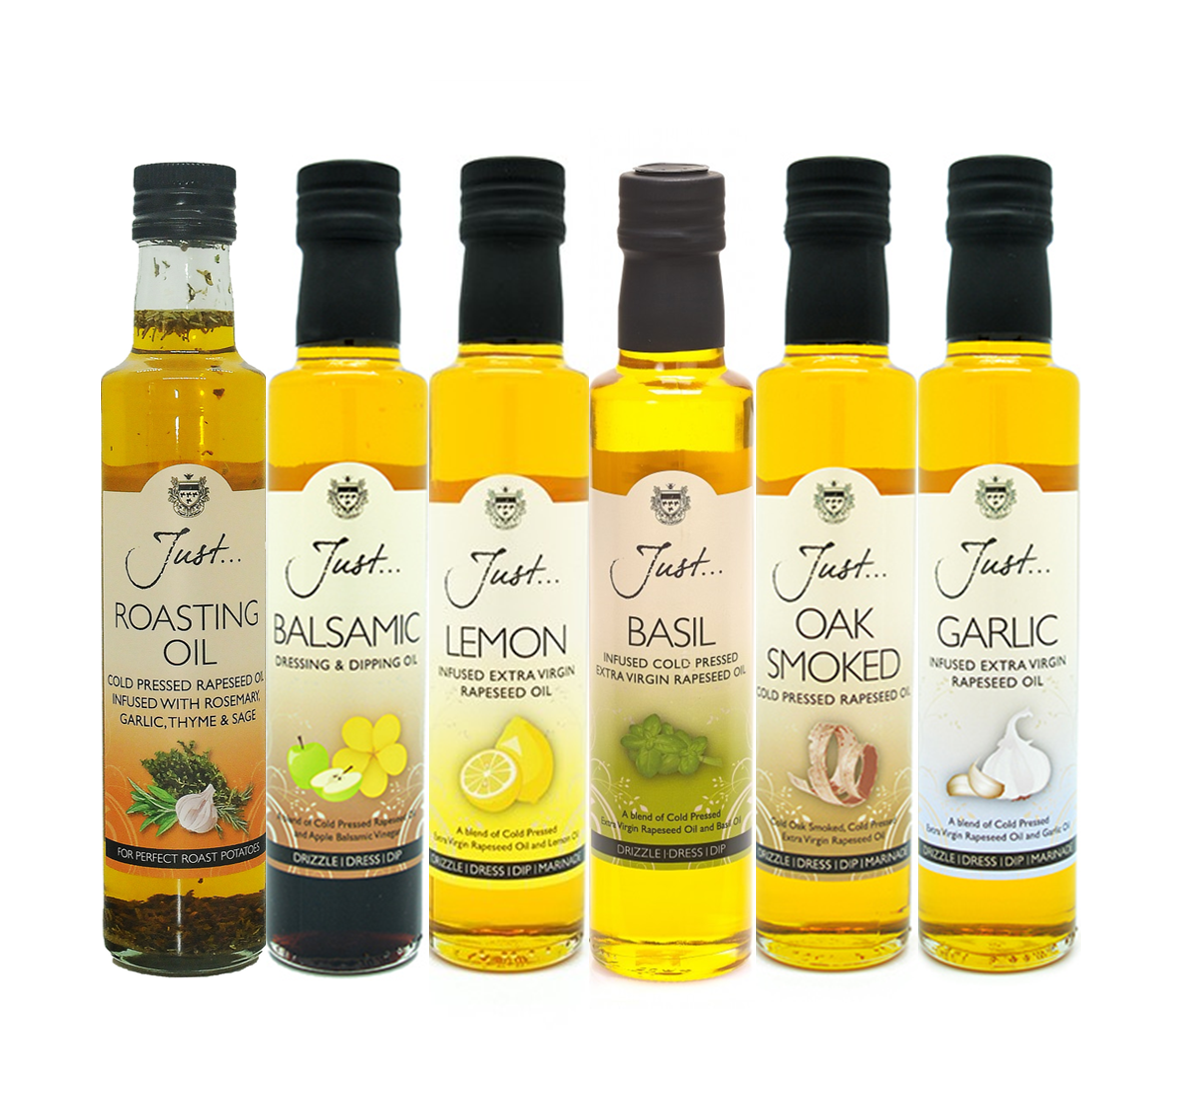 Just Oil Cook's Collection Mixed Box - Roasting Oil, Balsamic, Lemon, Basil, Oak Smoked and Garlic Infused Rapeseed Oil, 250 ml (Pack of 6)